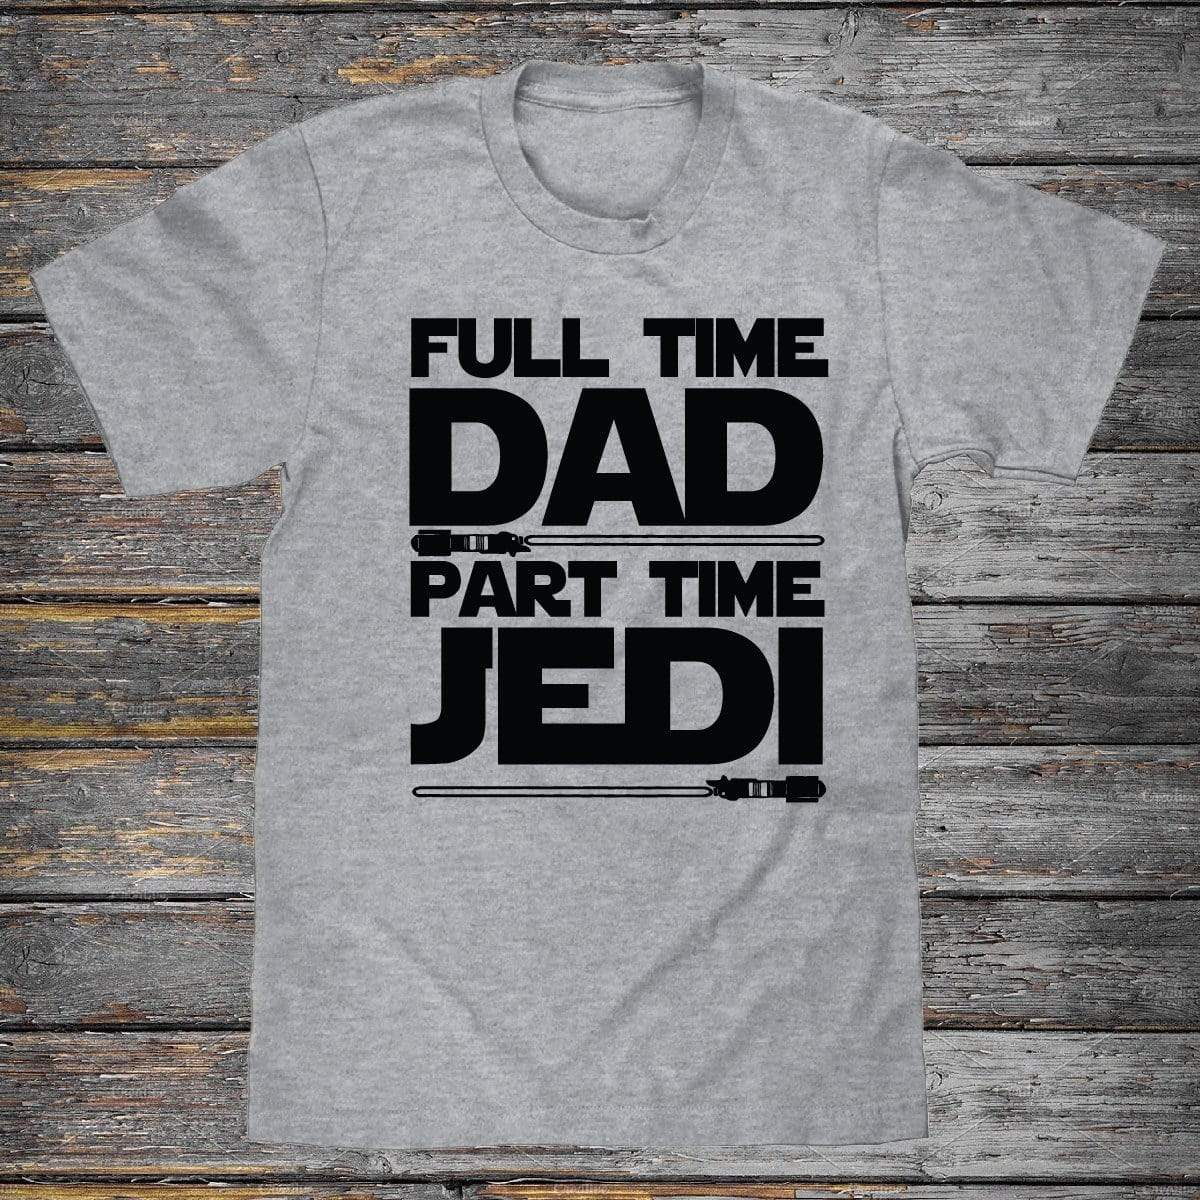 Part Time Jedi Premium Unisex T-Shirt